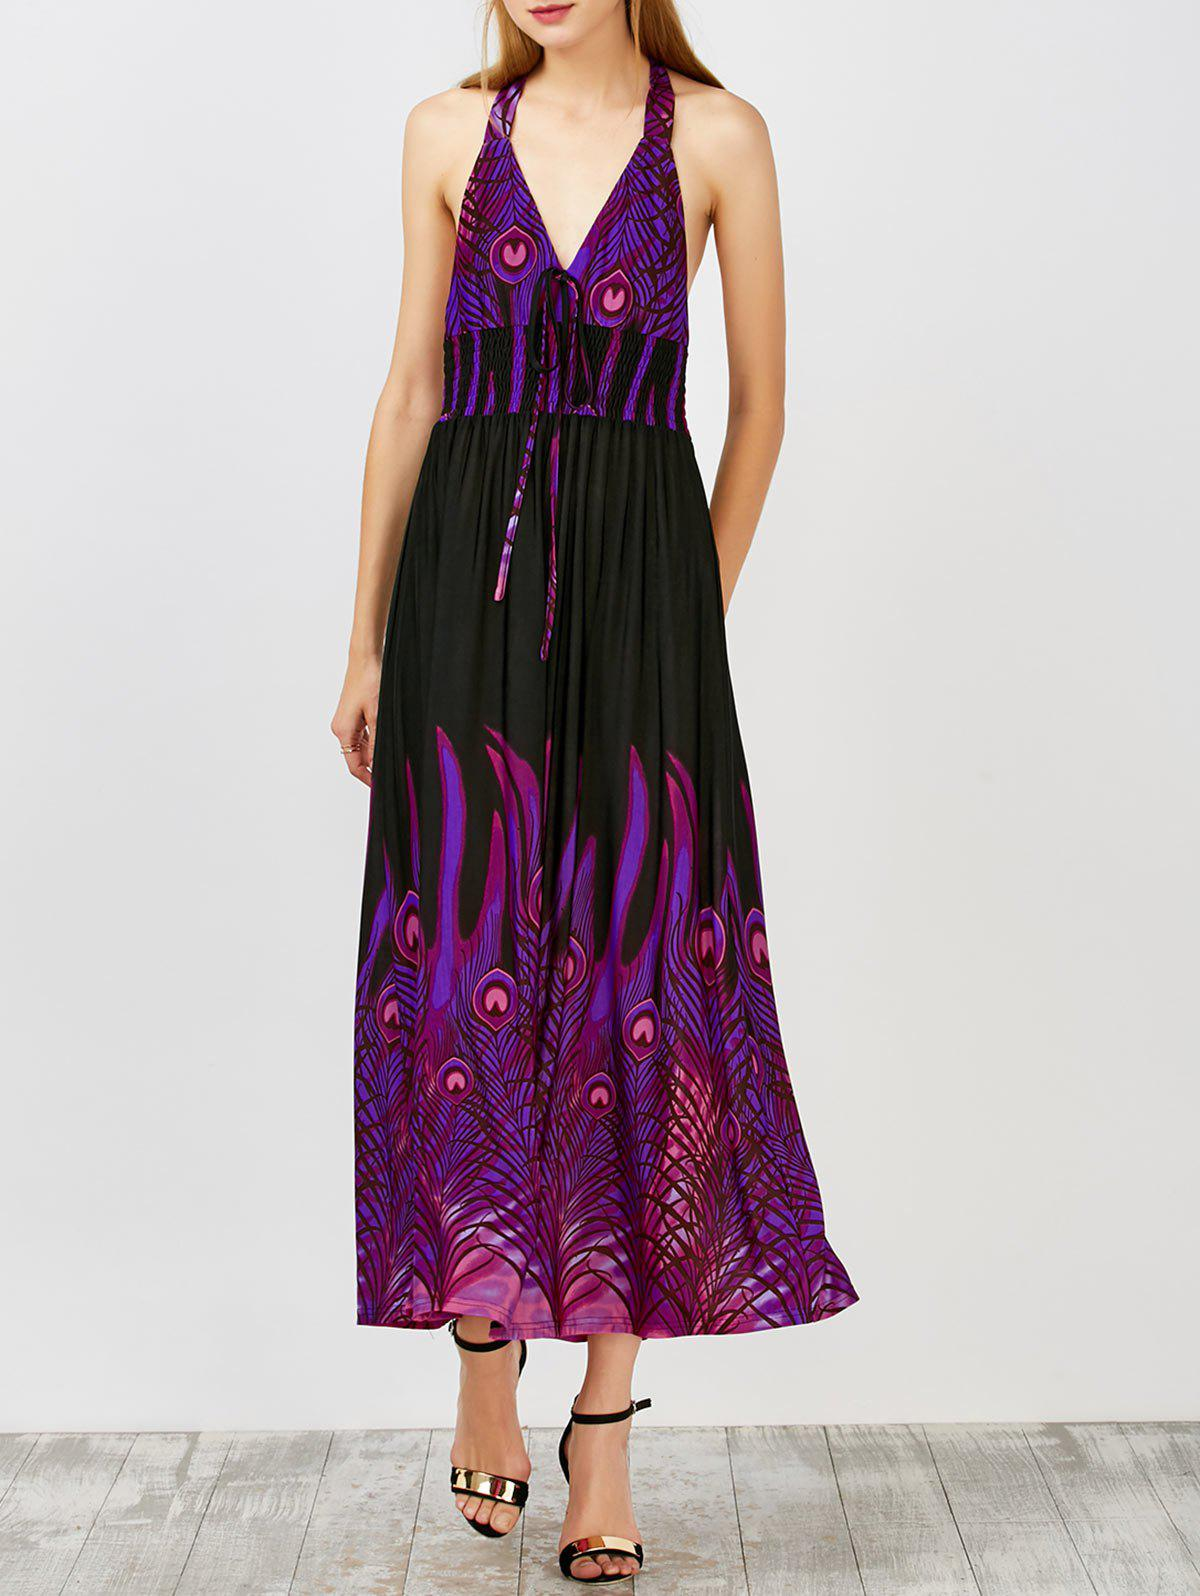 Peacock Printed Halter Open Back Maxi Dress - PURPLE XL